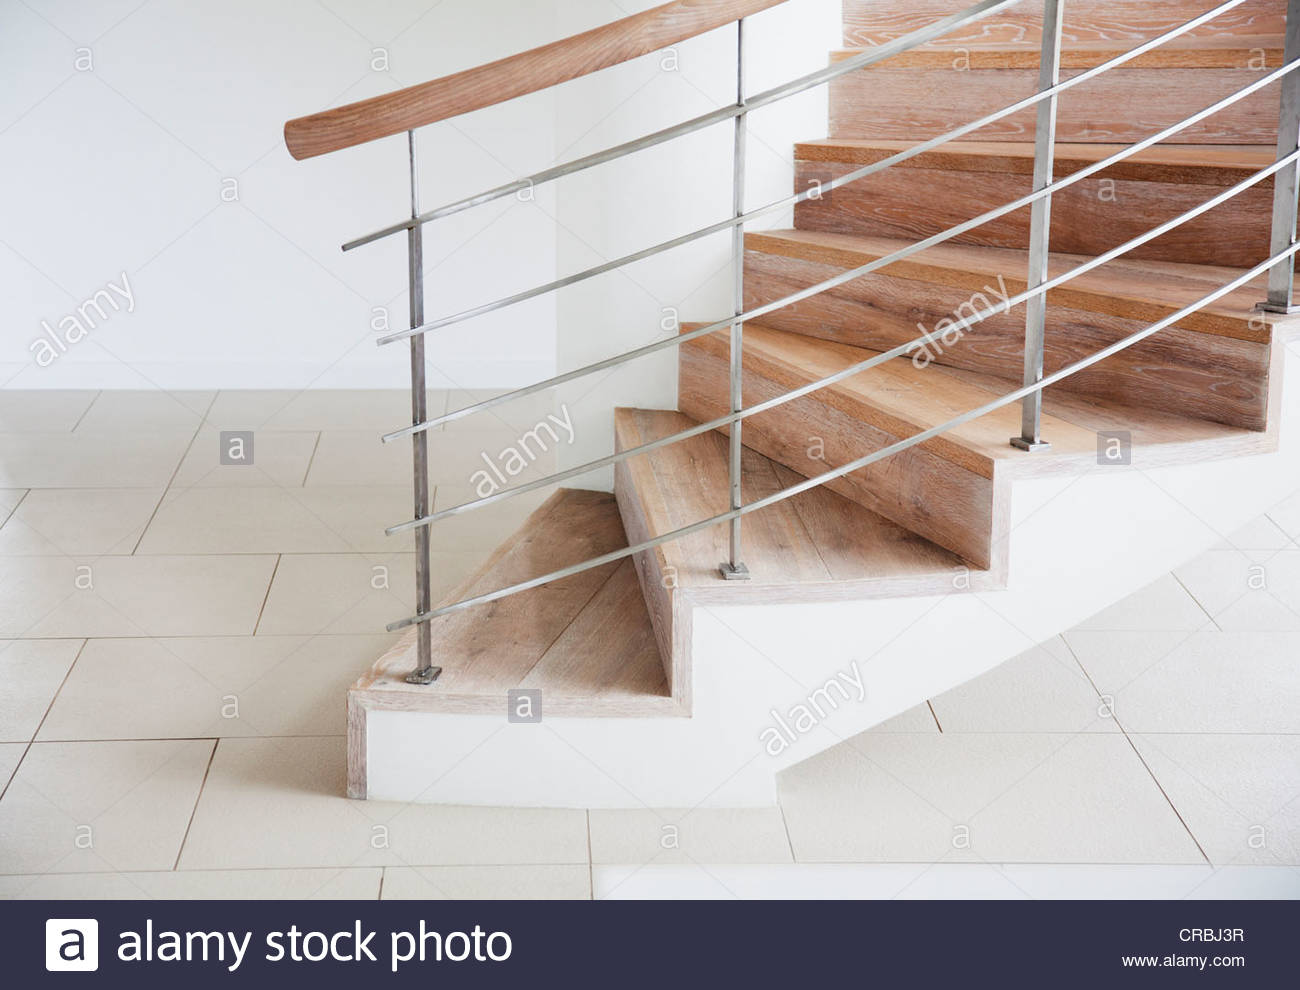 Wooden staircase and railing in modern house - Stock Image